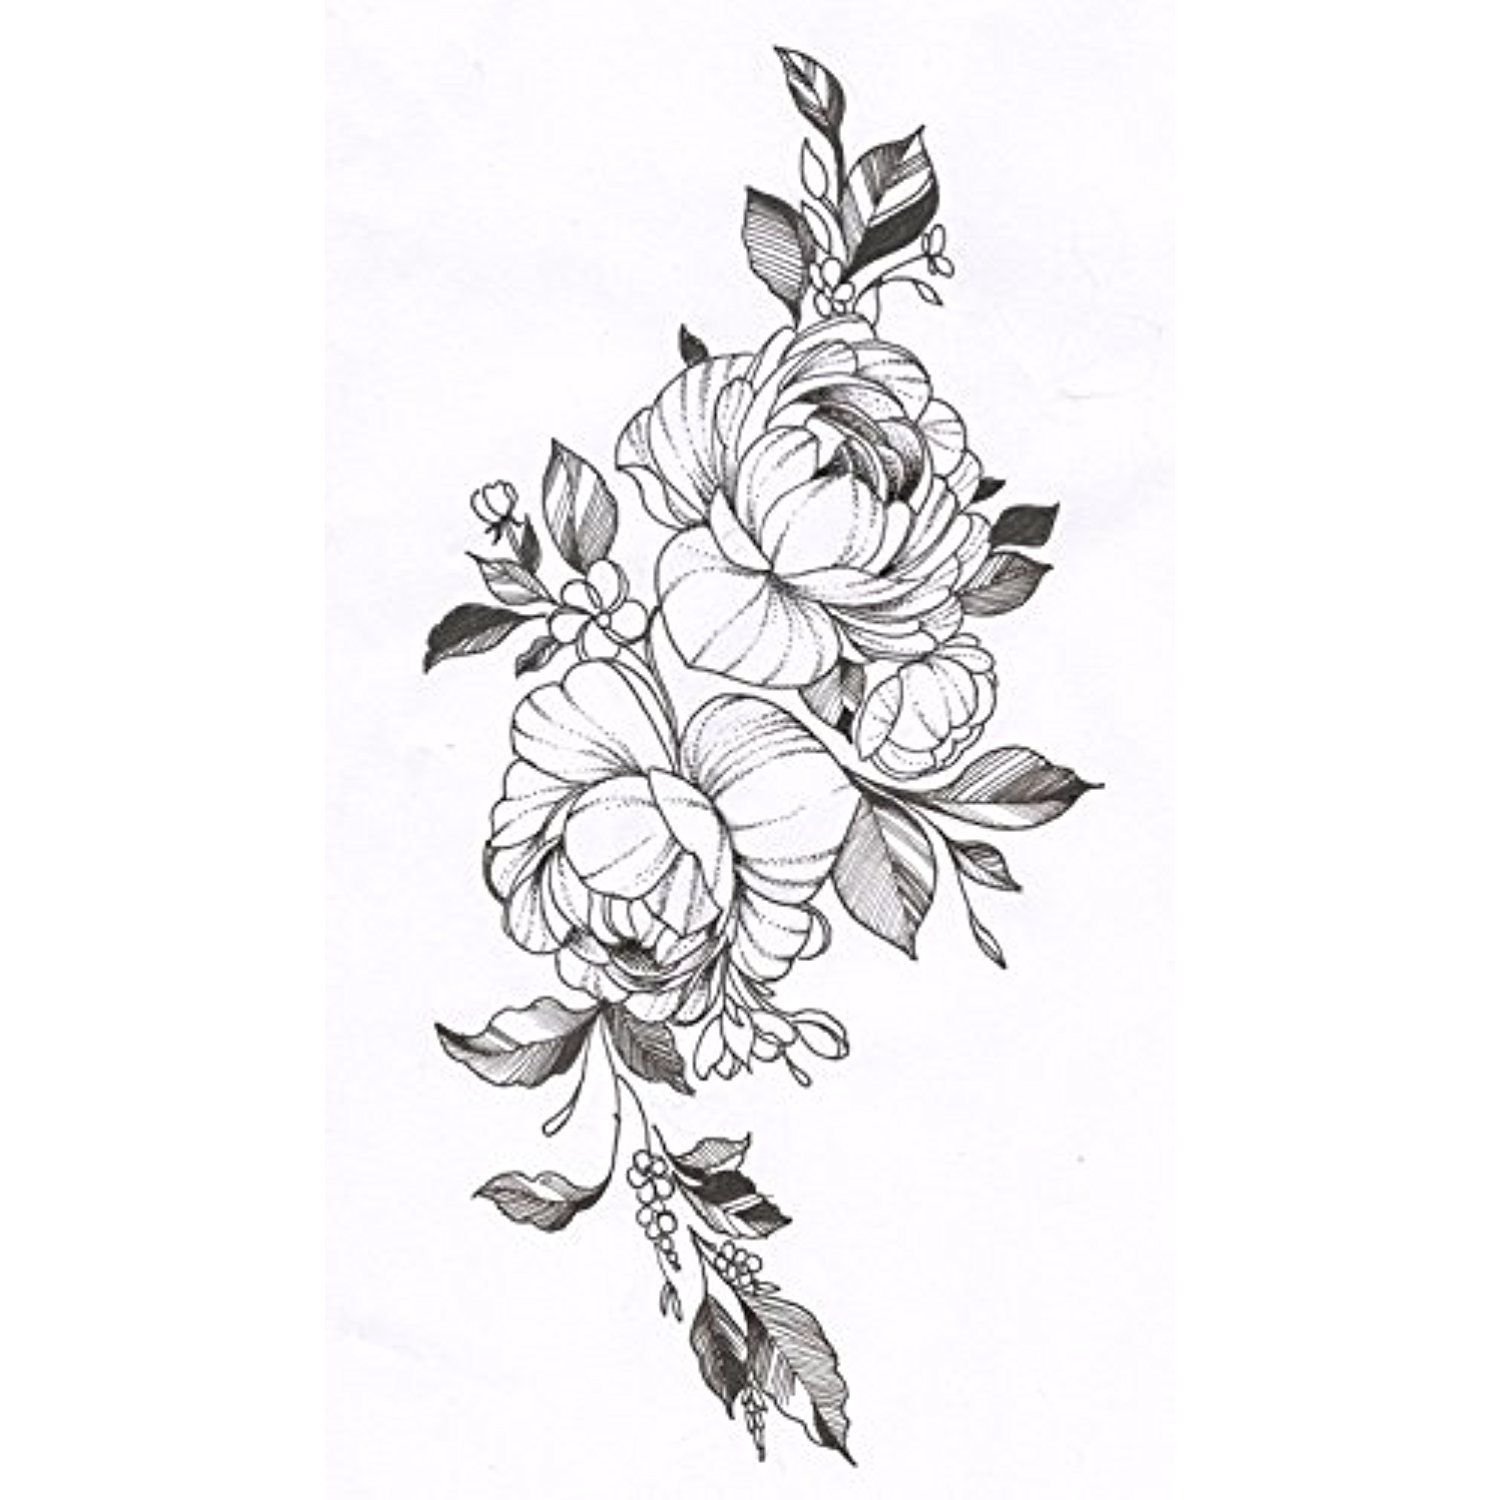 Temporary Tattoos Paper Waterproof Tattoo Sticker 2 Pcs 00186 8 4 You Can Find More Detail Temporary Tattoo Paper Tattoo Paper Half Sleeve Tattoos Designs